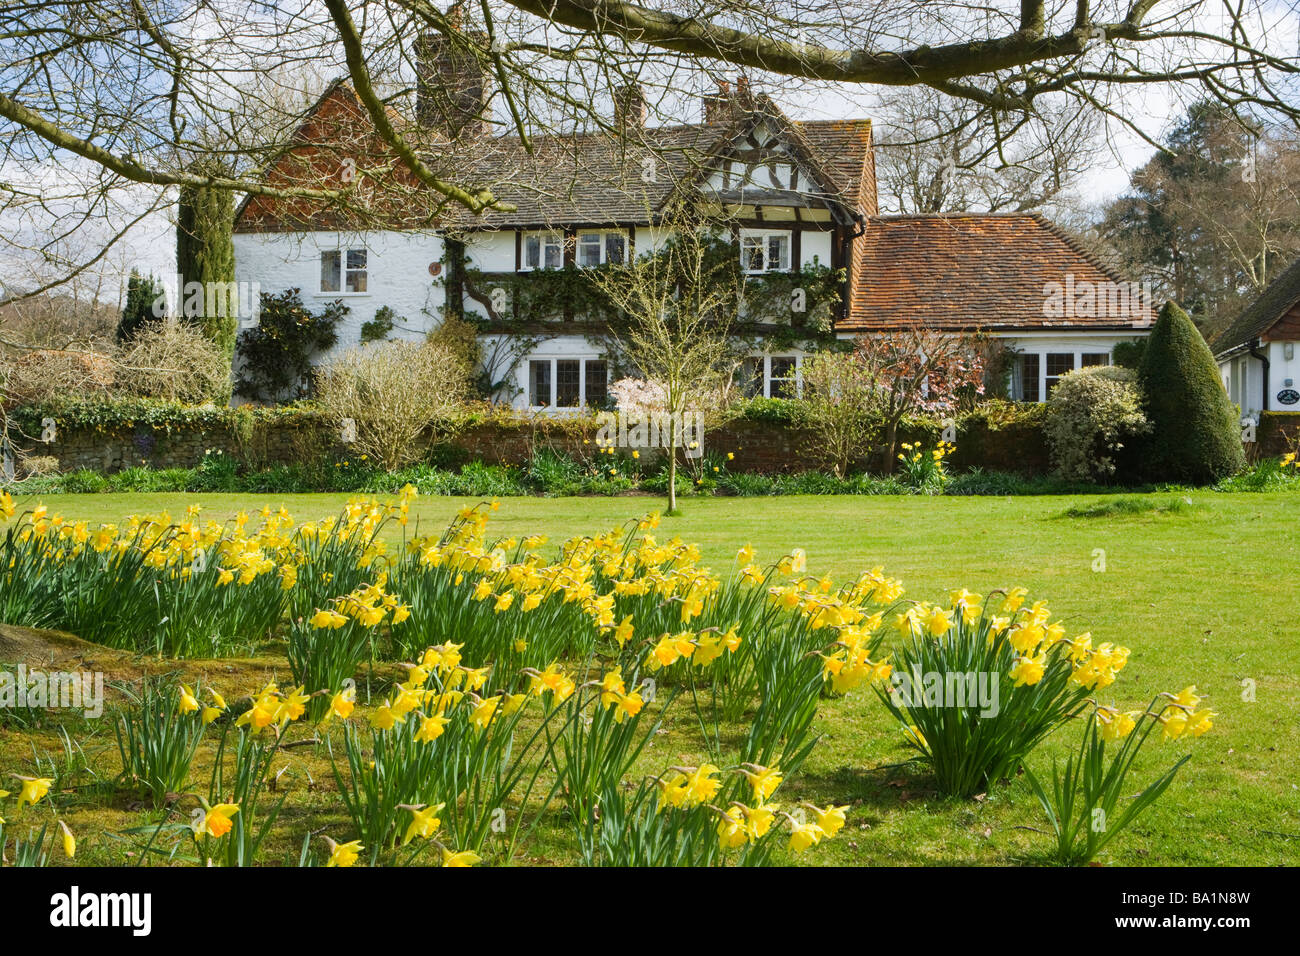 Cottage and daffodils. Shamley green, Surrey, UK - Stock Image